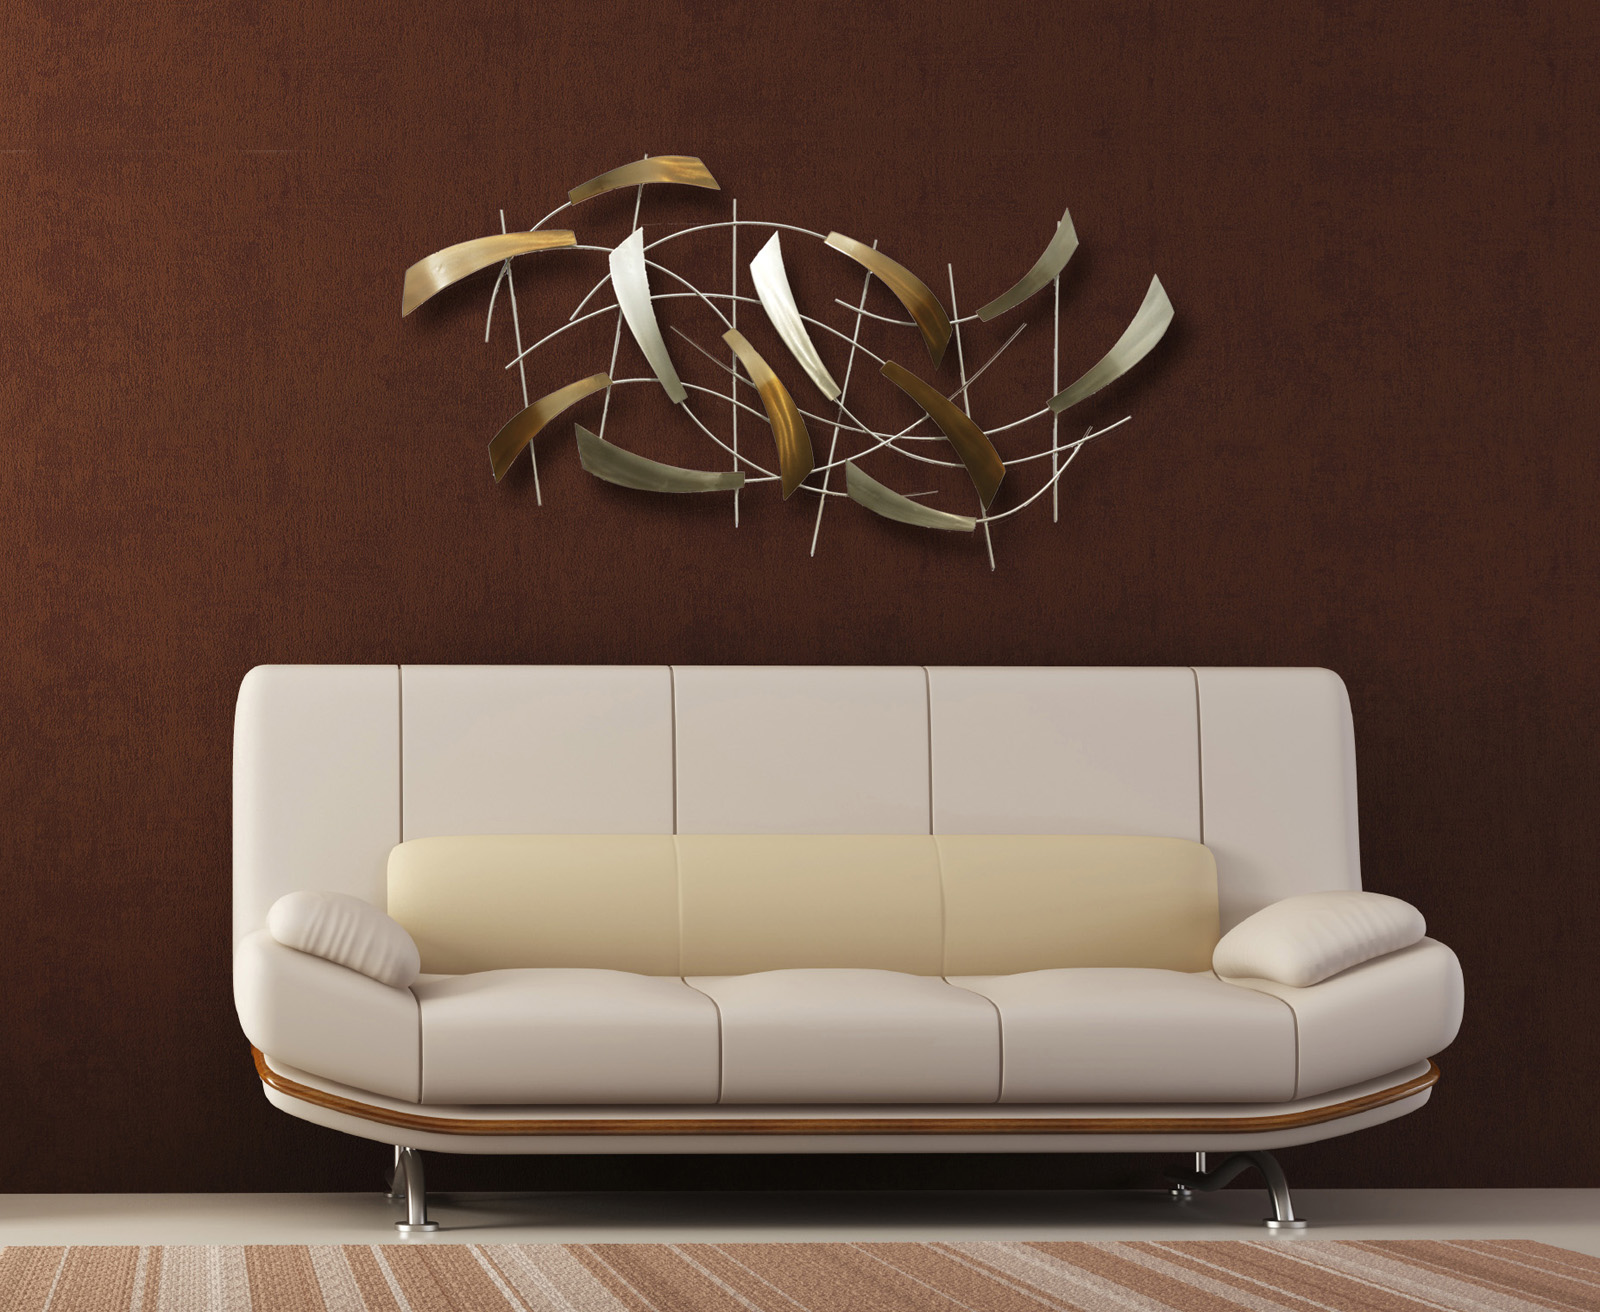 Gift home today new contemporary wall designs are moderately priced furniture gifts Home decor furniture design